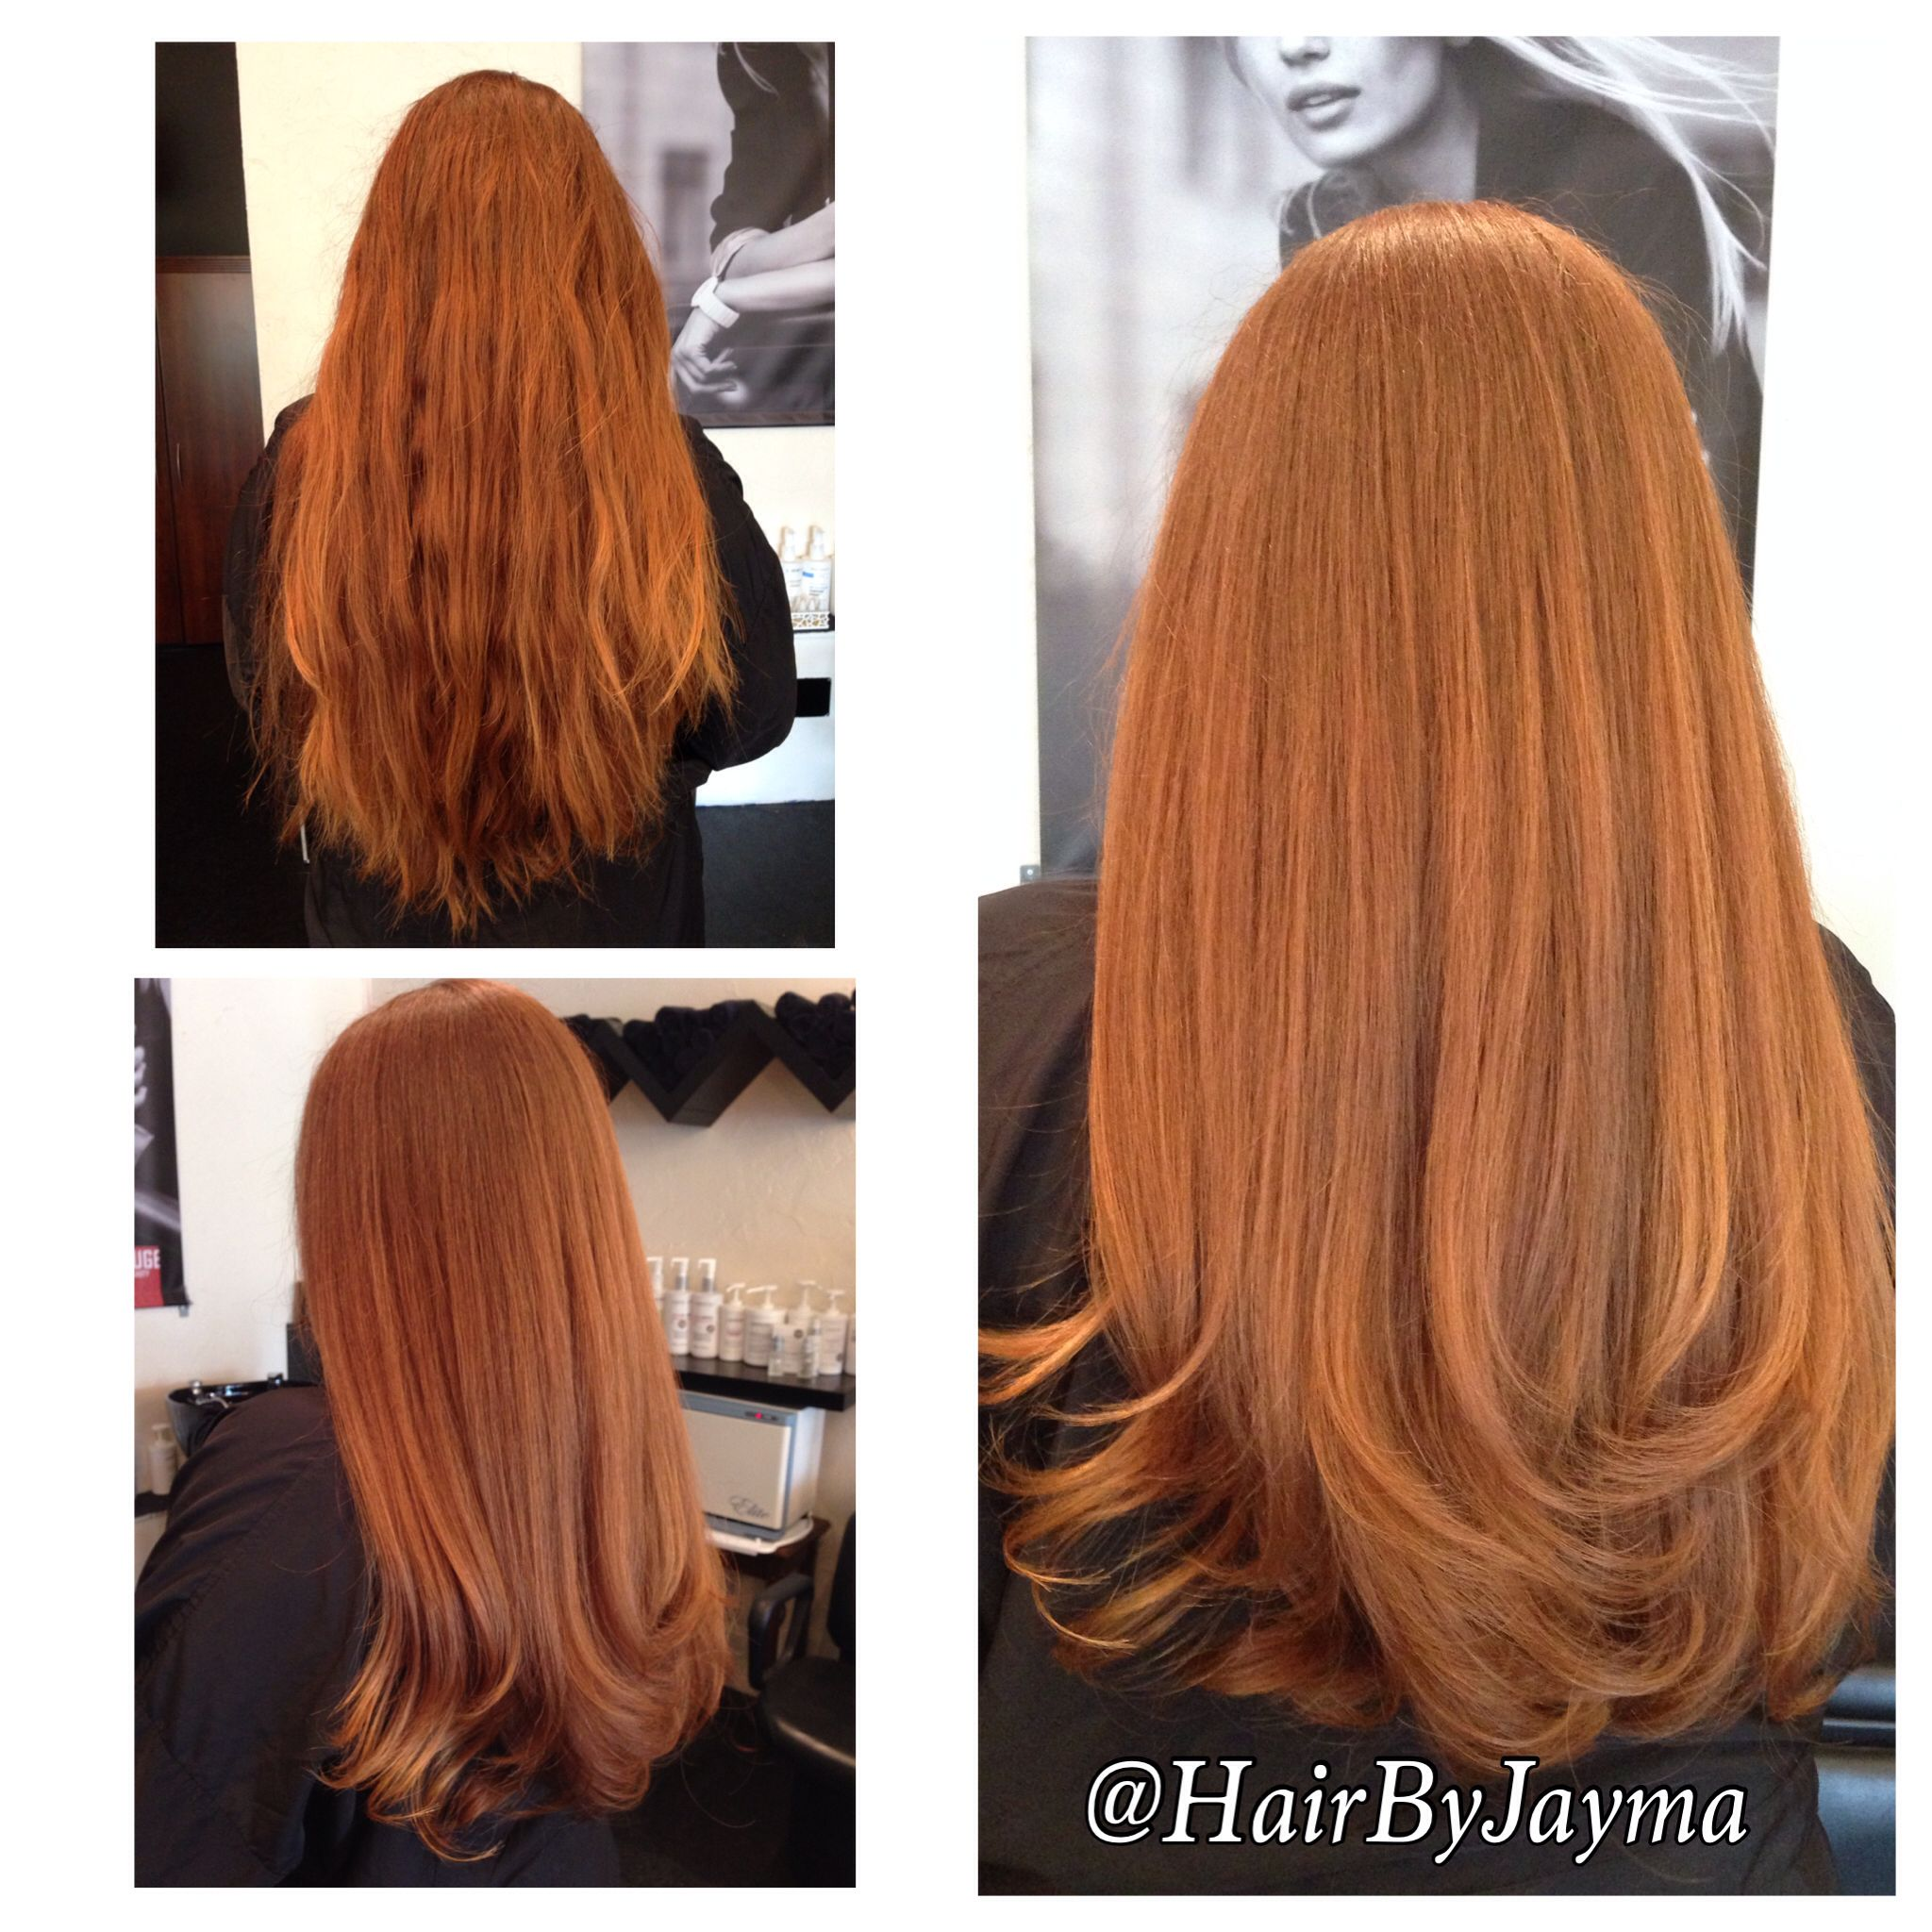 Beautiful red hair! Hair by Jayma